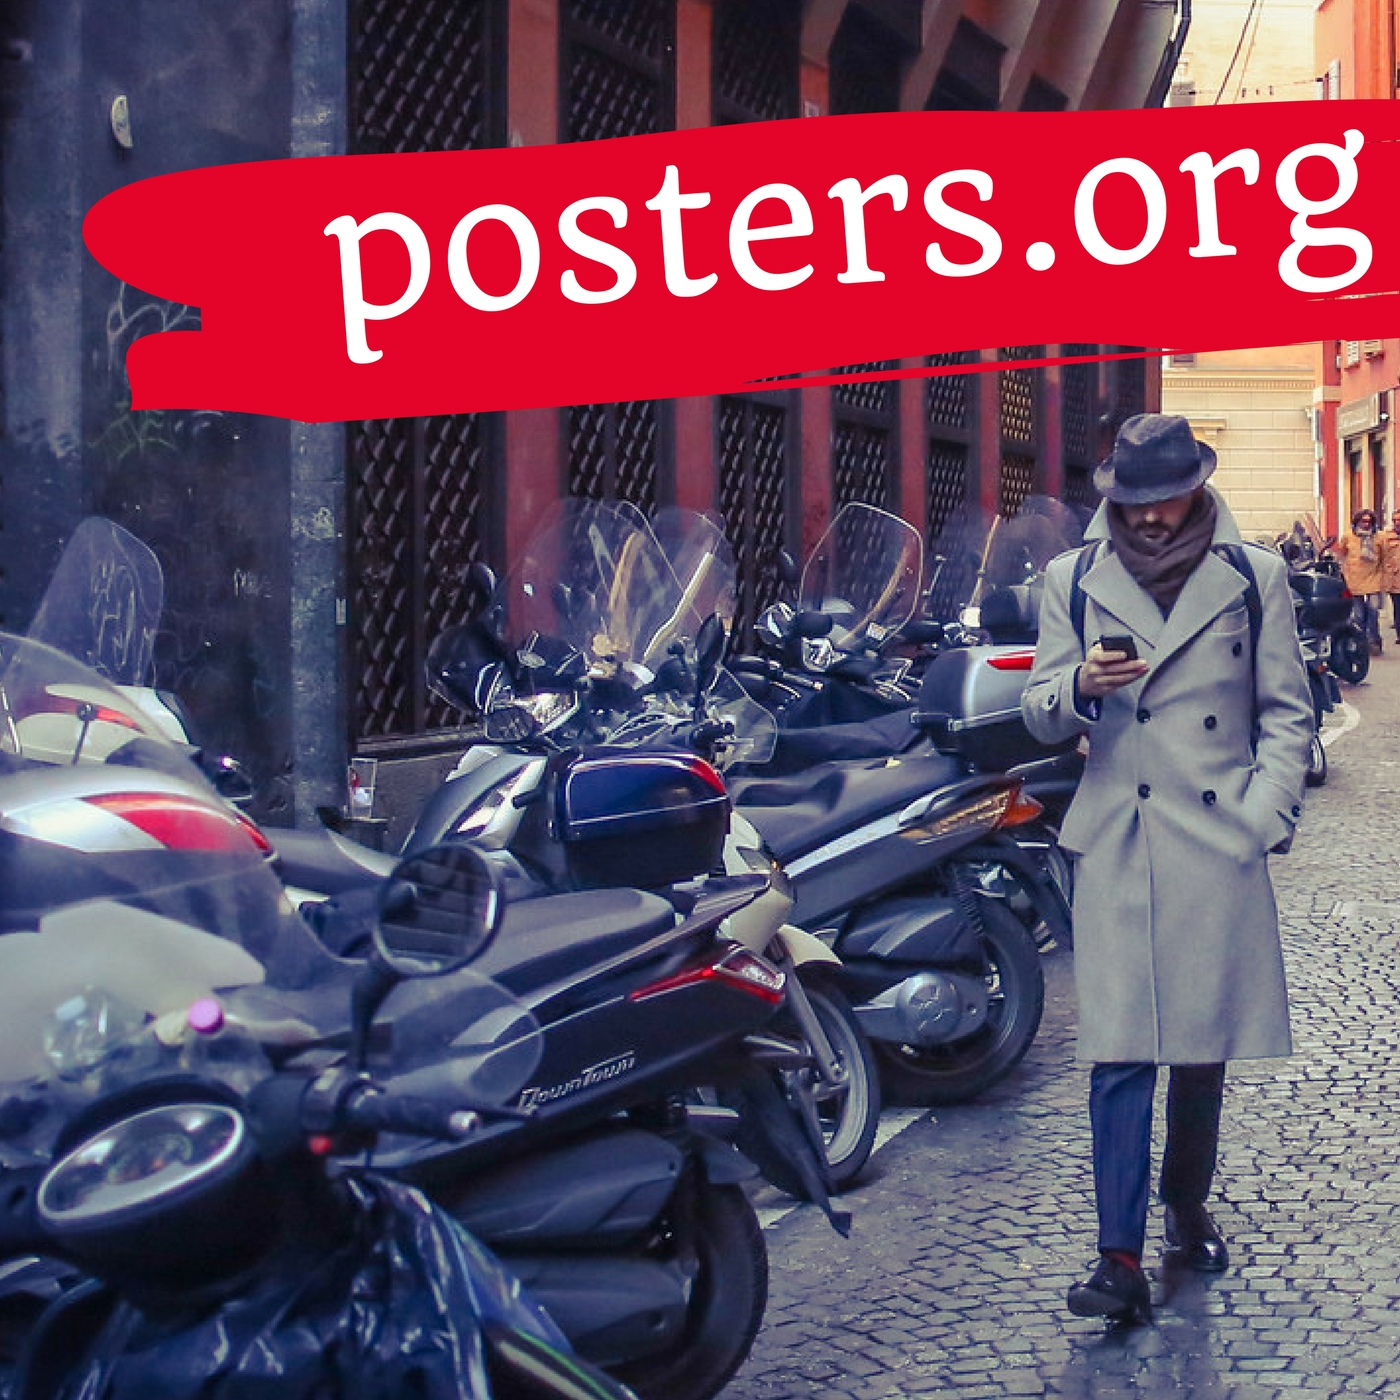 Posters.org, domain name for sale